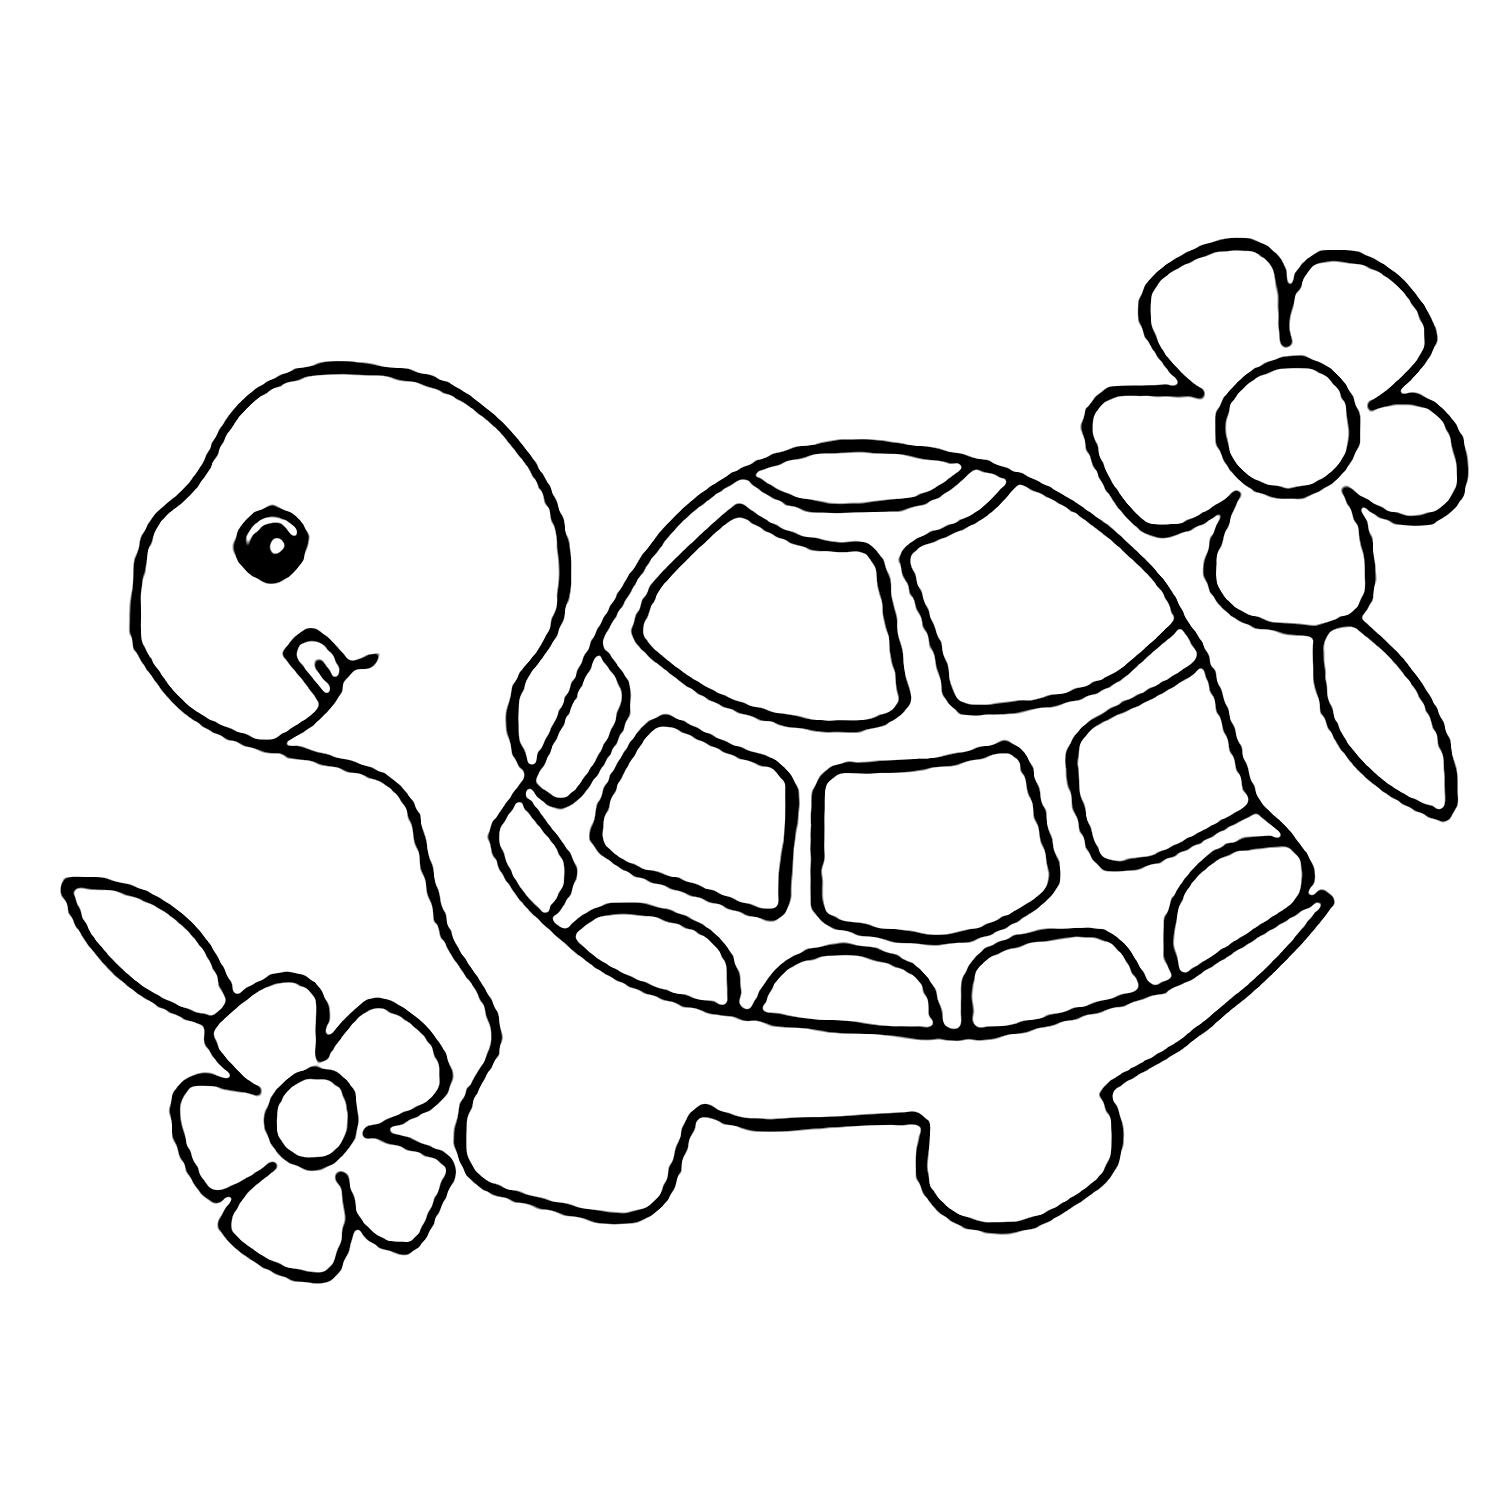 Turtles To Download For Free Funny Turtles Coloring Page From The Gallery Turtles Ju Turtle Coloring Pages Unicorn Coloring Pages Avengers Coloring Pages